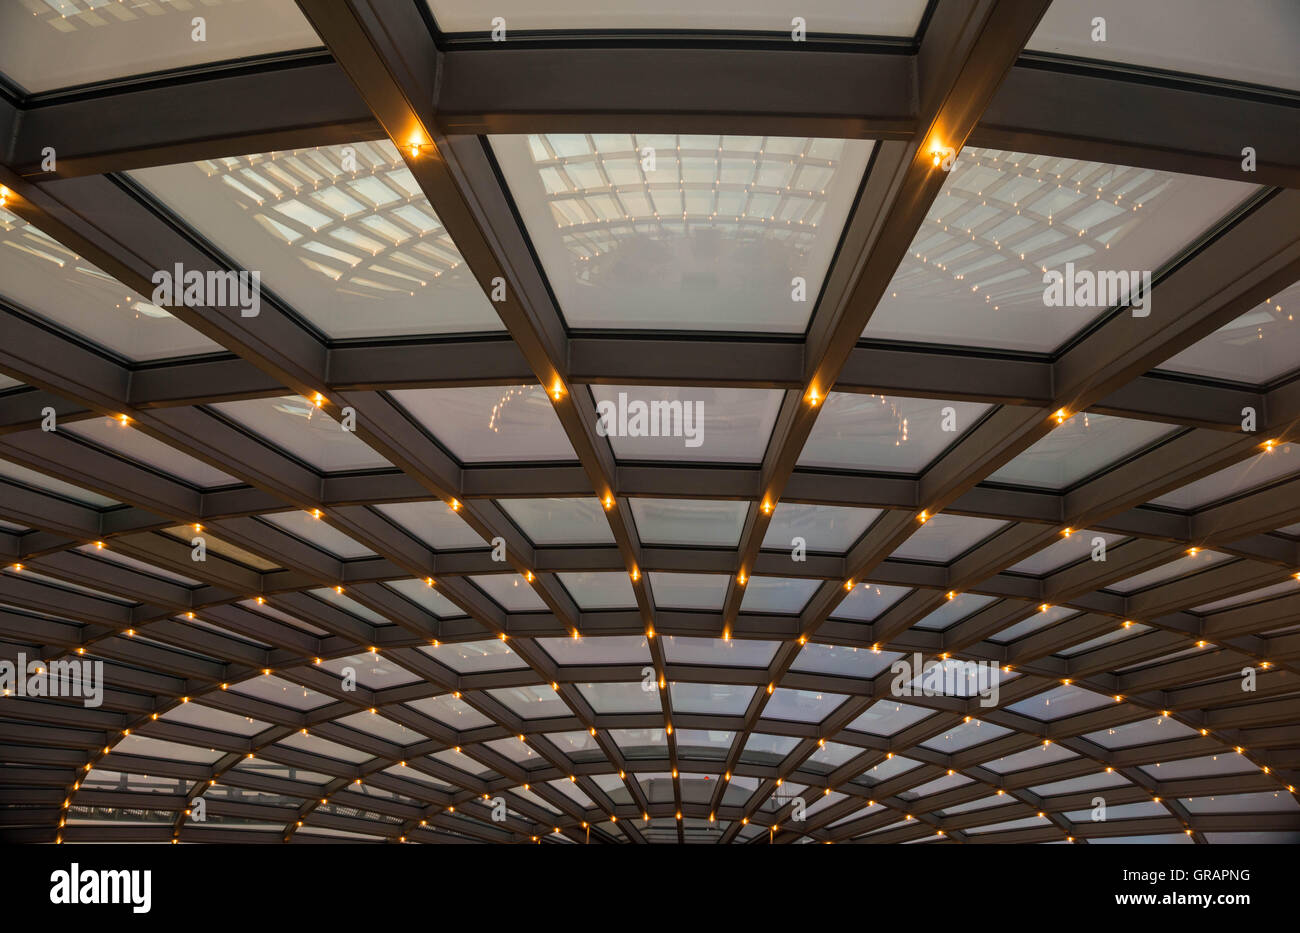 Full Frame Shot Of Illuminated Recessed Lights On Skylight - Stock Image